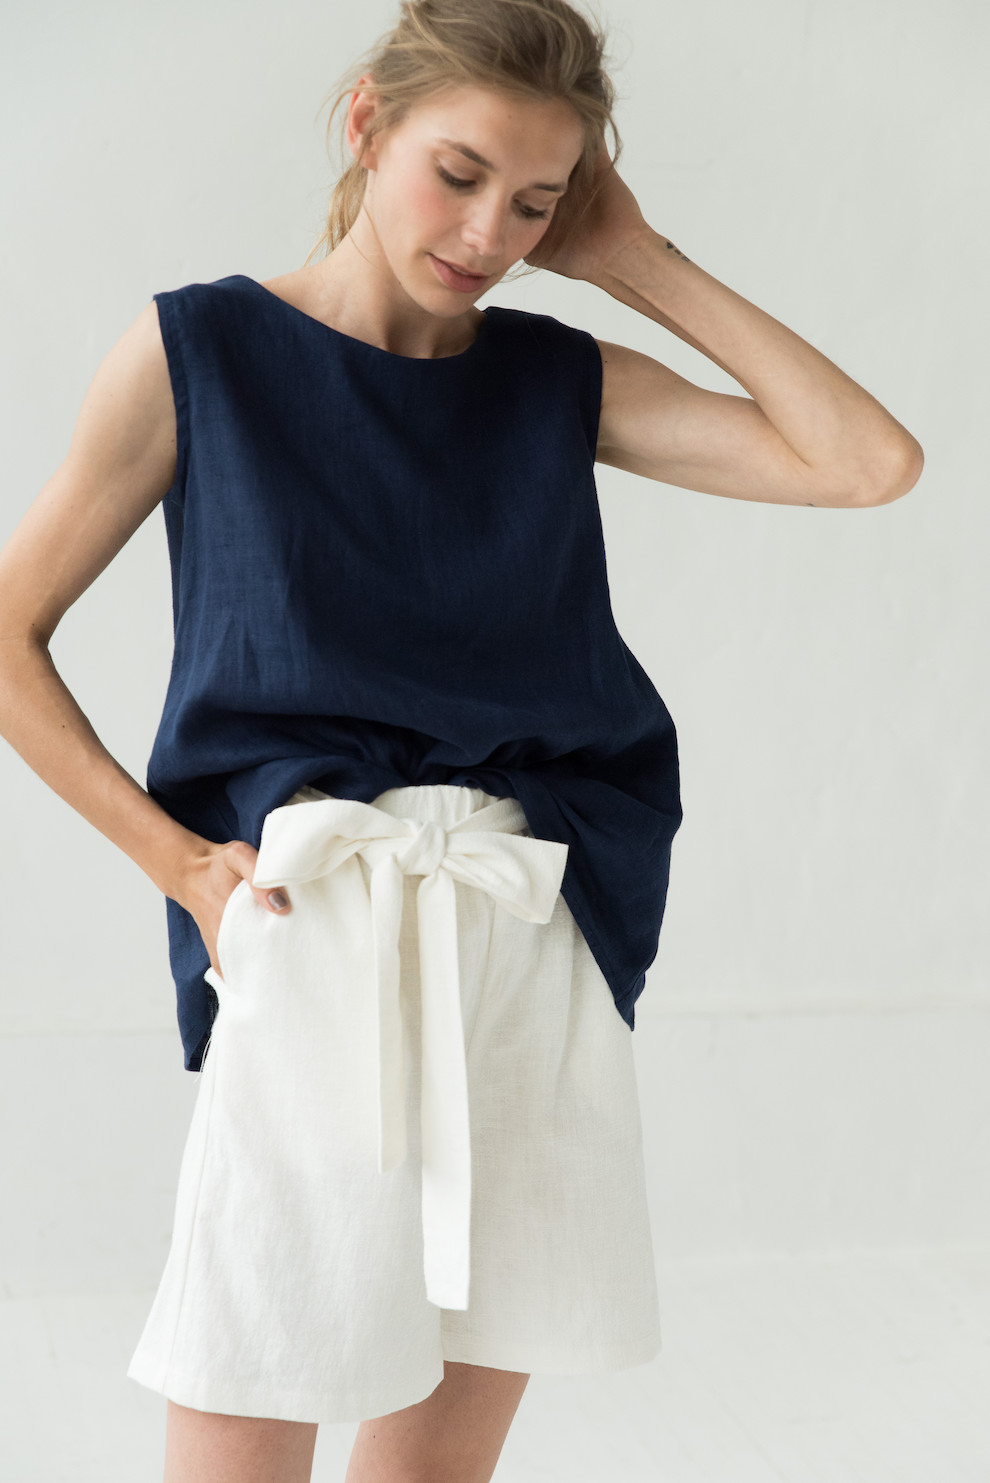 Linen shorts in white MIX&MATCH